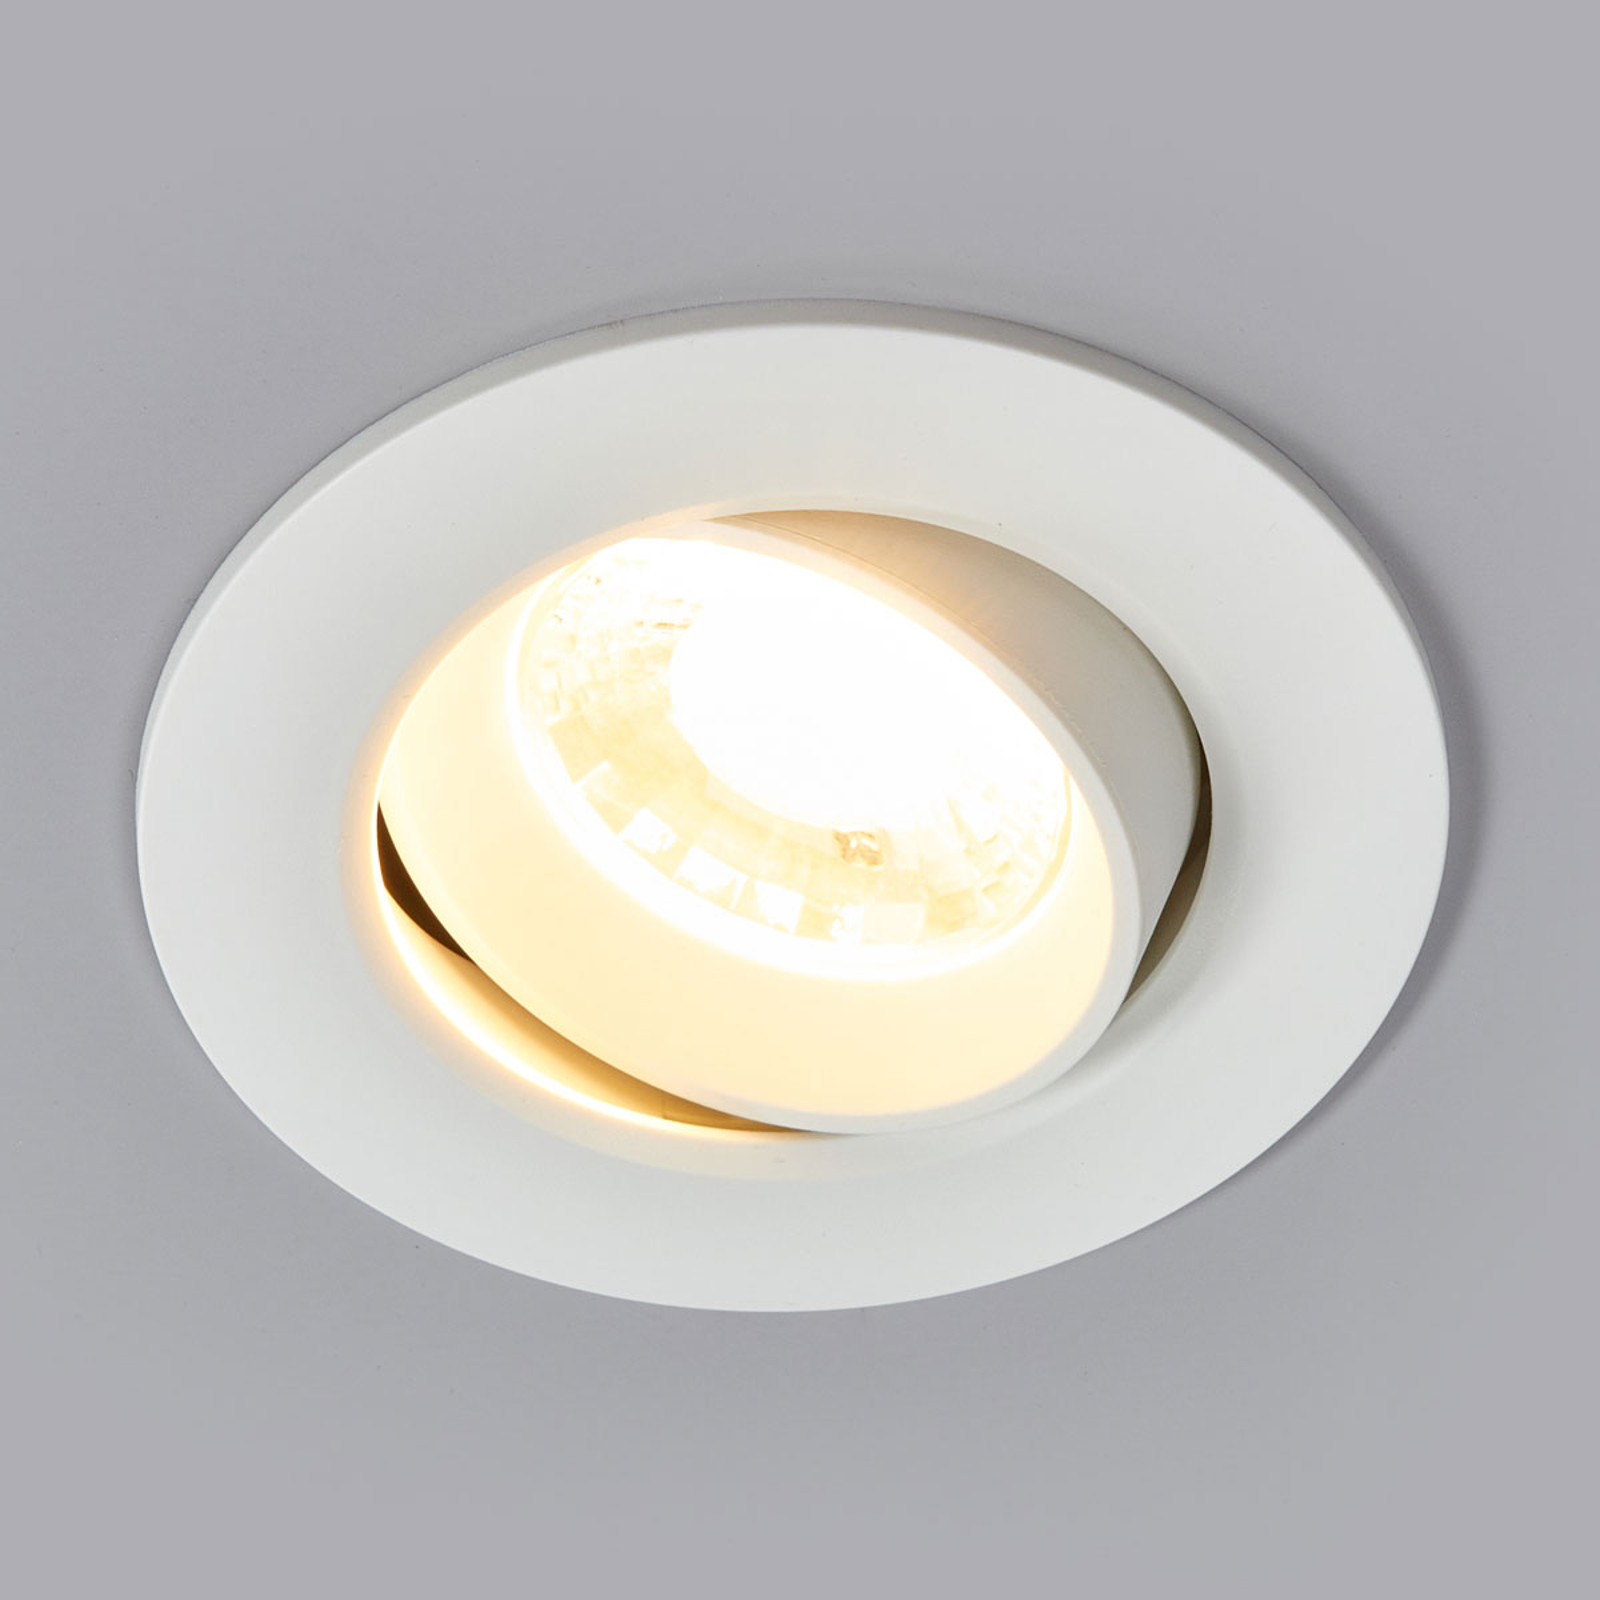 White Quentin LED recessed light_9978039_1